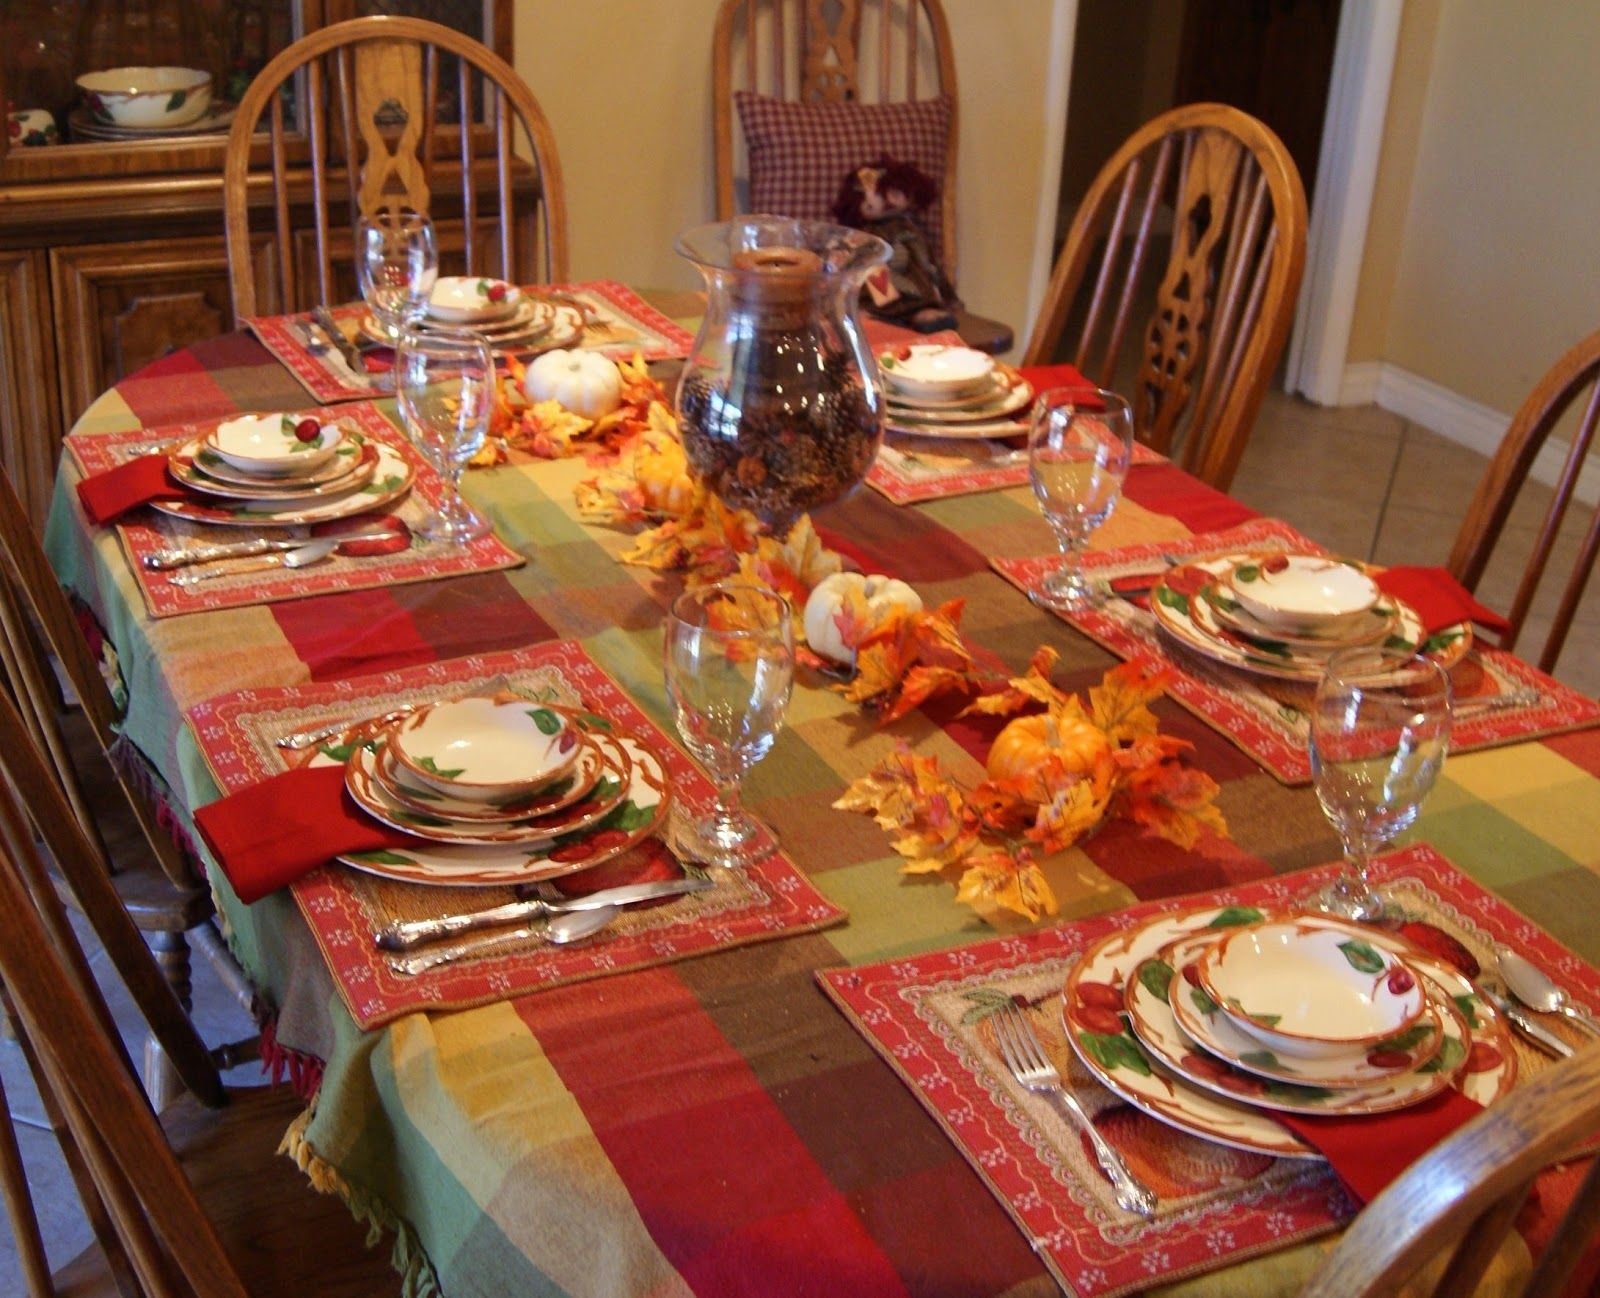 delightful golden thanksgiving table decorations on dining space with table decorating ideas marvelous straightforward thanksgiving table decorations ideas ... & delightful golden thanksgiving table decorations on dining space ...